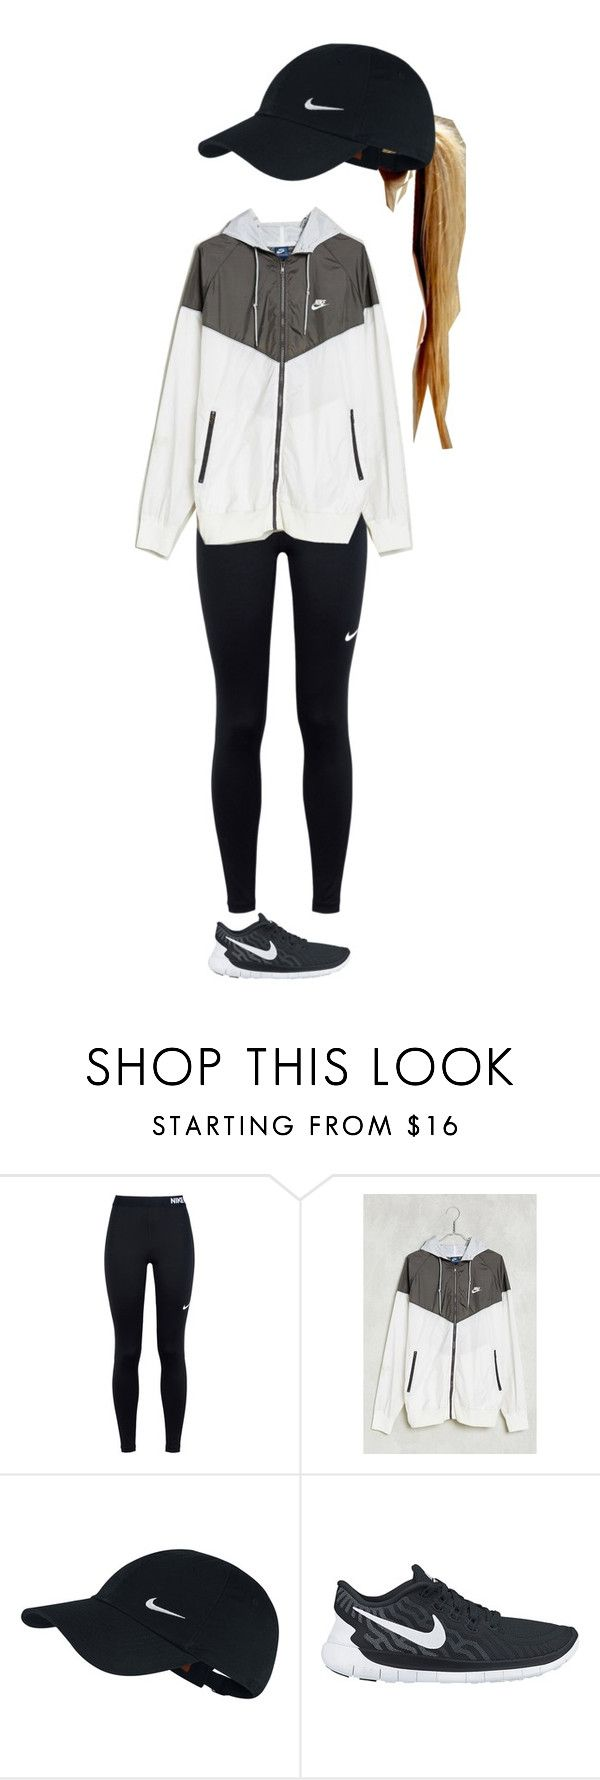 """ready for football season!"" by kyleemorrison ❤ liked on Polyvore featuring NIKE and Without Walls"